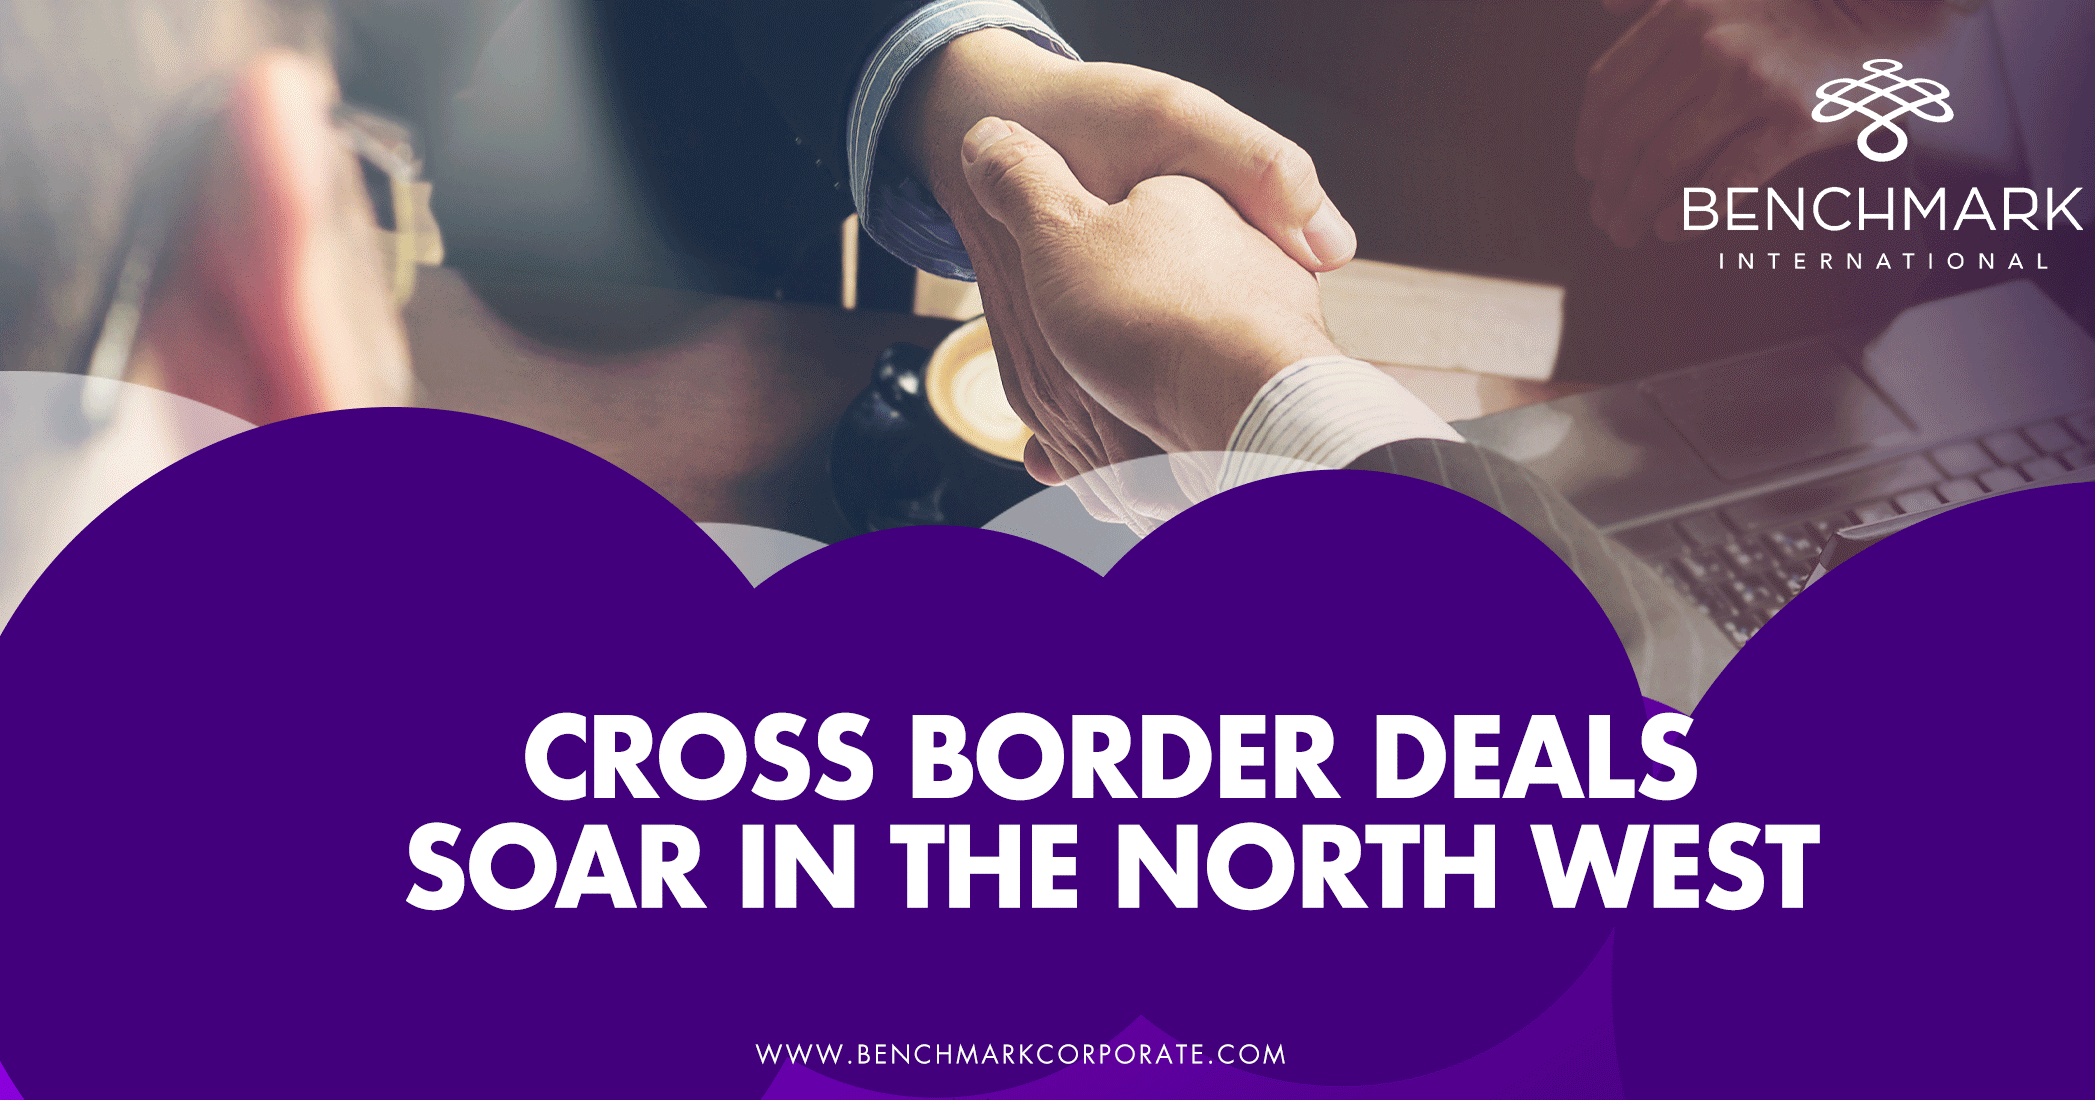 Cross Border Deals Soar in the North West